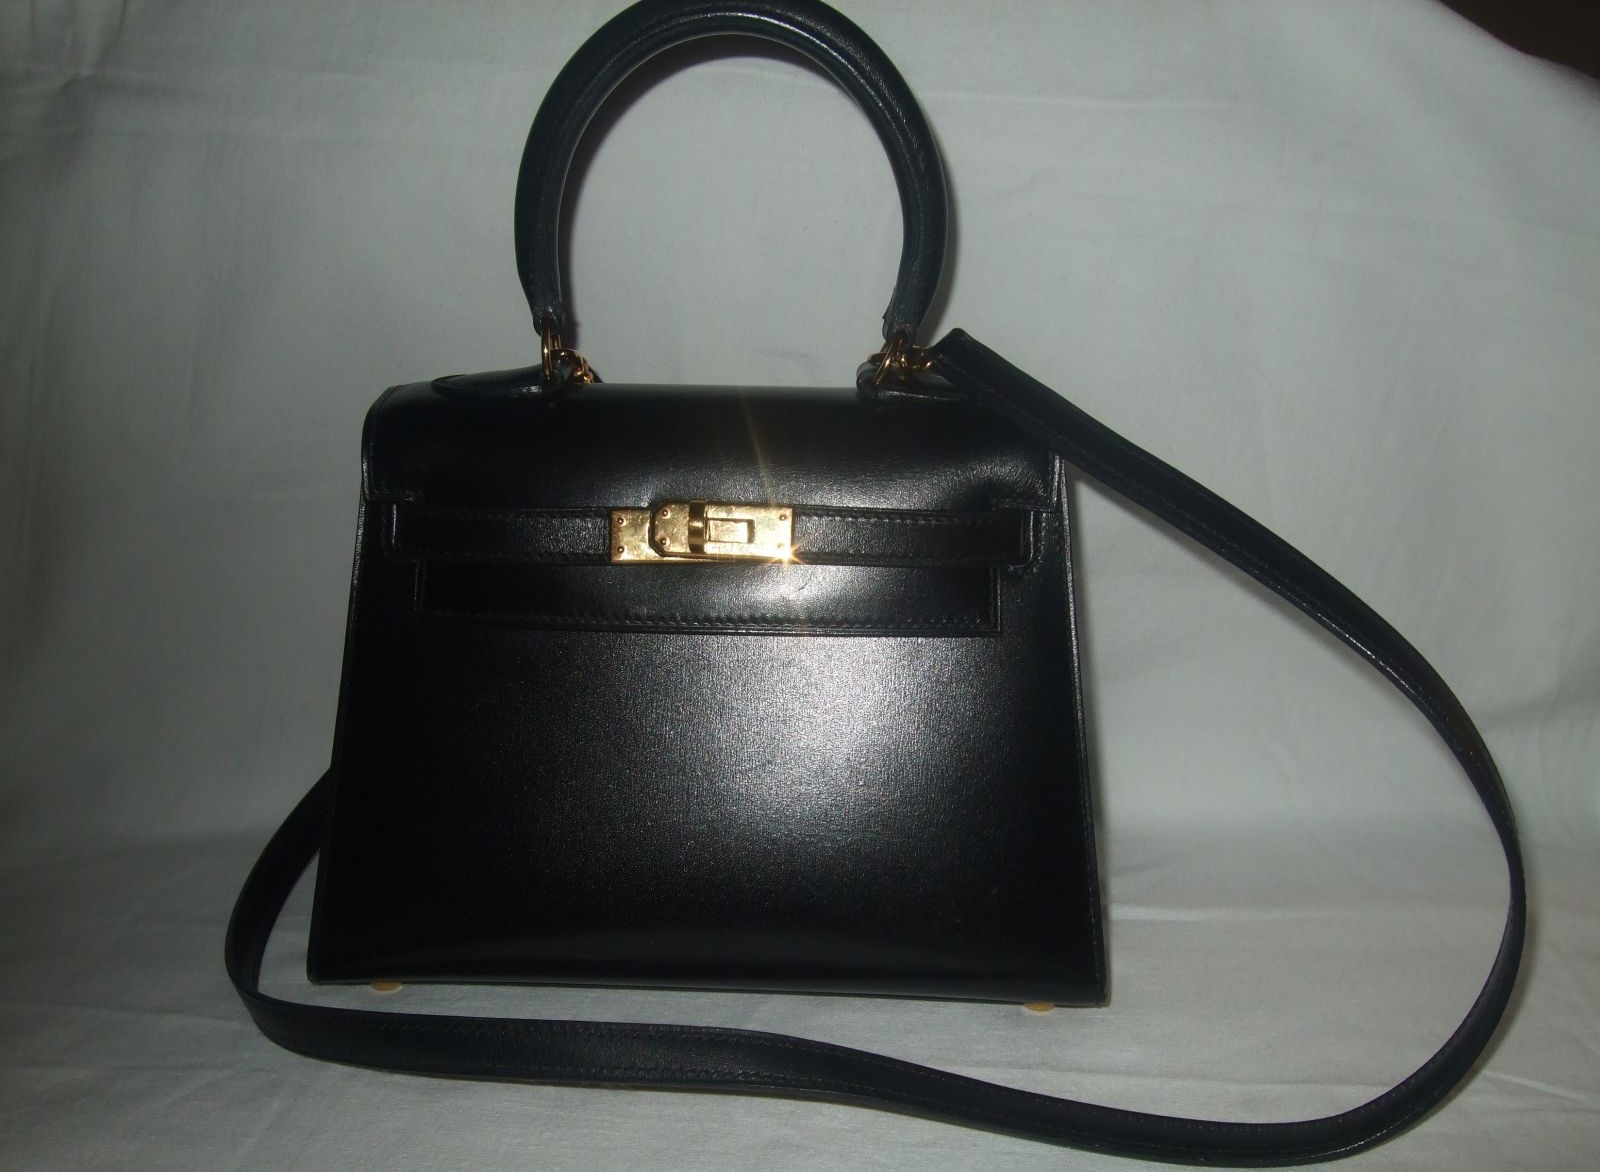 Top Most Expensive Hermes Handbags Ever